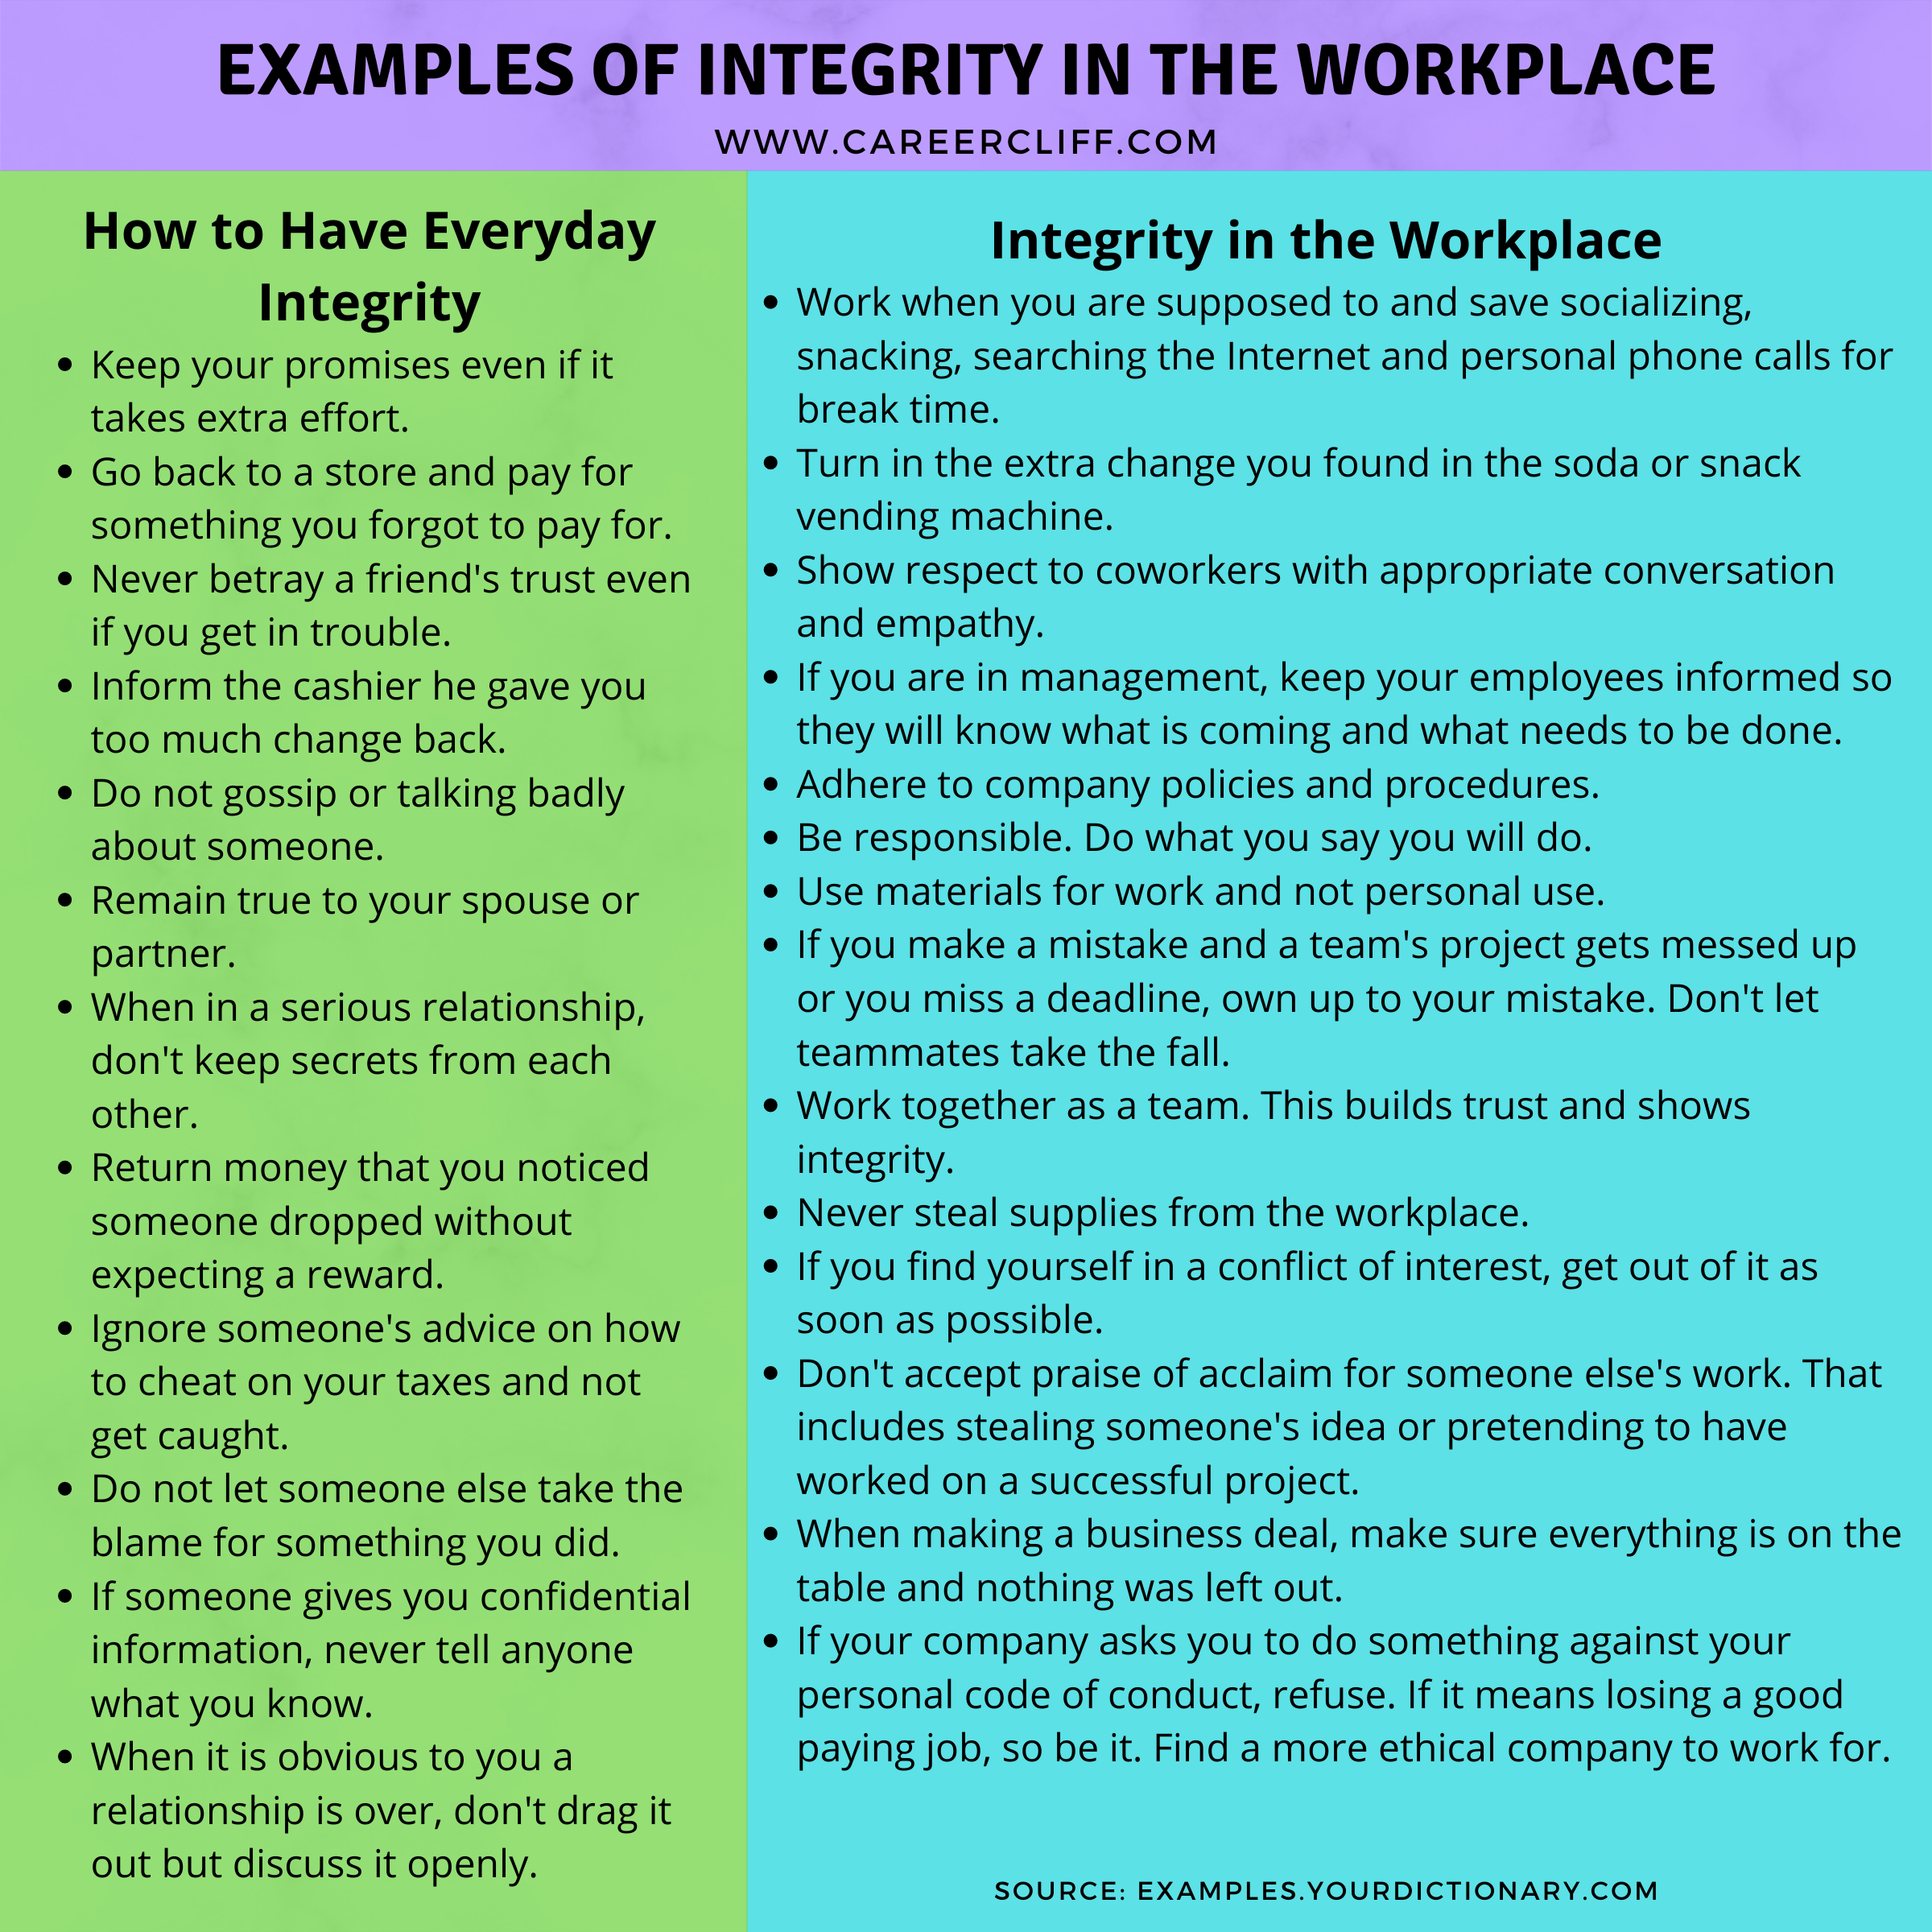 integrity in the workplace examples of integrity in the workplace importance of integrity in the workplace honesty and integrity in the workplace definition of integrity in the workplace ethics and integrity in the workplace define integrity in the workplace examples of fairness and honesty in the workplace meaning of integrity in the workplace importance of integrity in the workplace pdf integrity activities for the workplace questioning integrity in the workplace characteristics of integrity in the workplace showing integrity in the workplace maintain integrity of conduct in the workplace integrity in the workplace essay integrity and trust in the workplace integrity in the workplace 2017 demonstrating integrity in the workplace integrity issues in the workplace integrity as a value in the workplace personal integrity at workplace integrity and respect in the workplace importance of integrity in the workplace ppt integrity scenarios workplace uncompromising integrity in workplace importance of integrity in workplace examples of honesty and integrity in the workplace ethics & integrity in a workplace integrity example in workplace personal integrity at the workplace examples of showing integrity in the workplace describe integrity in the workplace examples of acting with integrity in the workplace acting with integrity in the workplace integrity and professionalism in the workplace honesty & integrity in a workplace integrity in the workplace activities workplace integrity examples examples of workplace integrity example for integrity in workplace